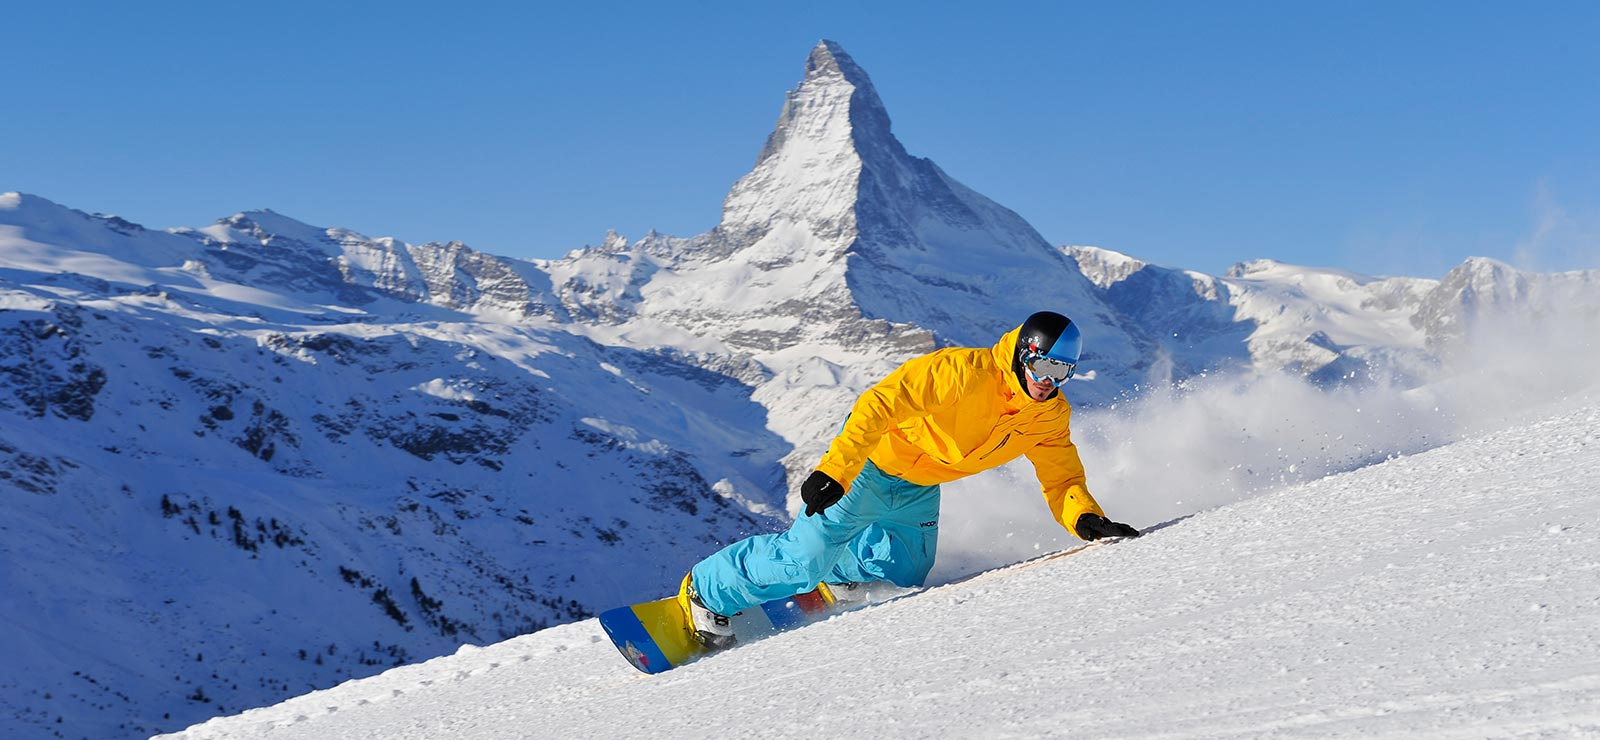 zermatt_winter_05.jpg